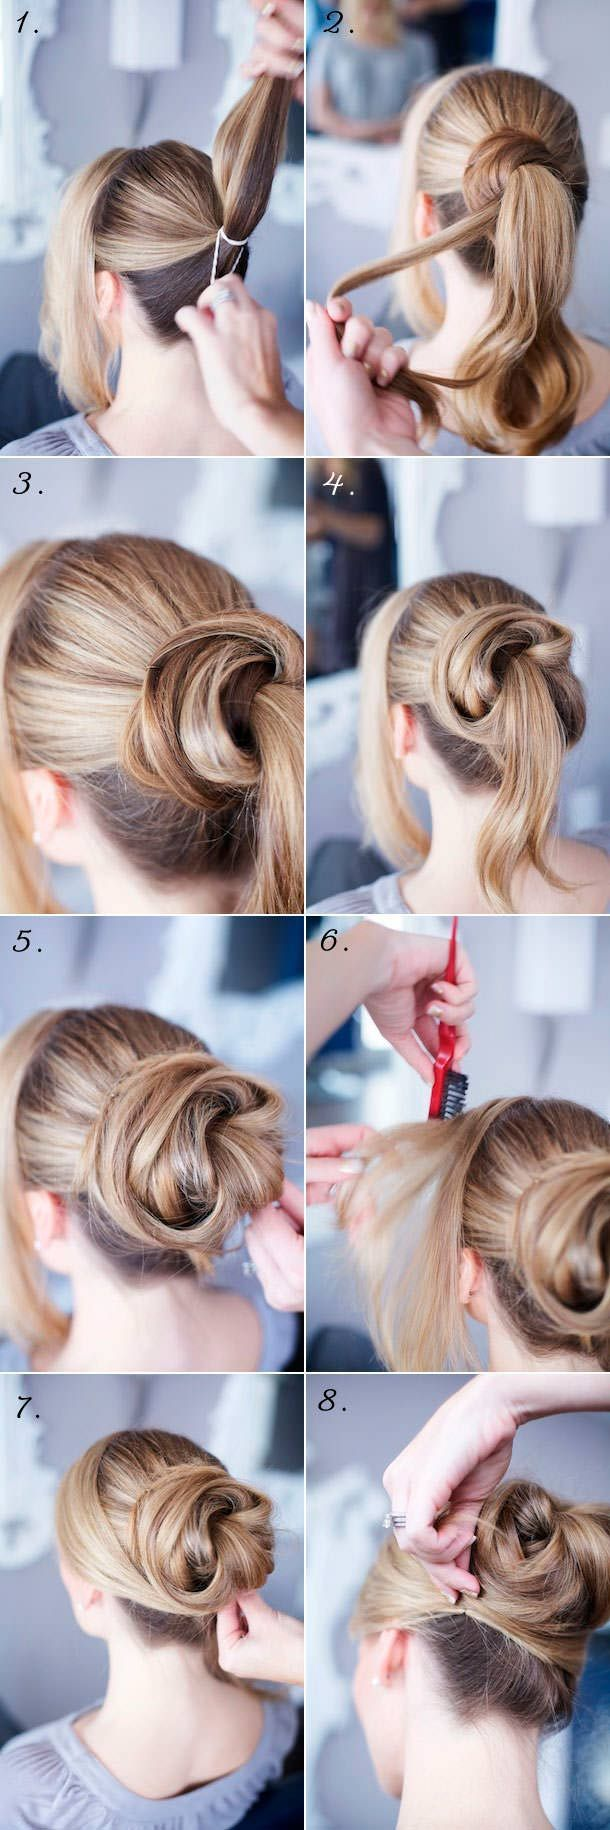 15 Quick And Easy Everyday Hairstyle Ideas All For Fashion Design Hair Styles Long Hair Styles Updo Hairstyles Tutorials